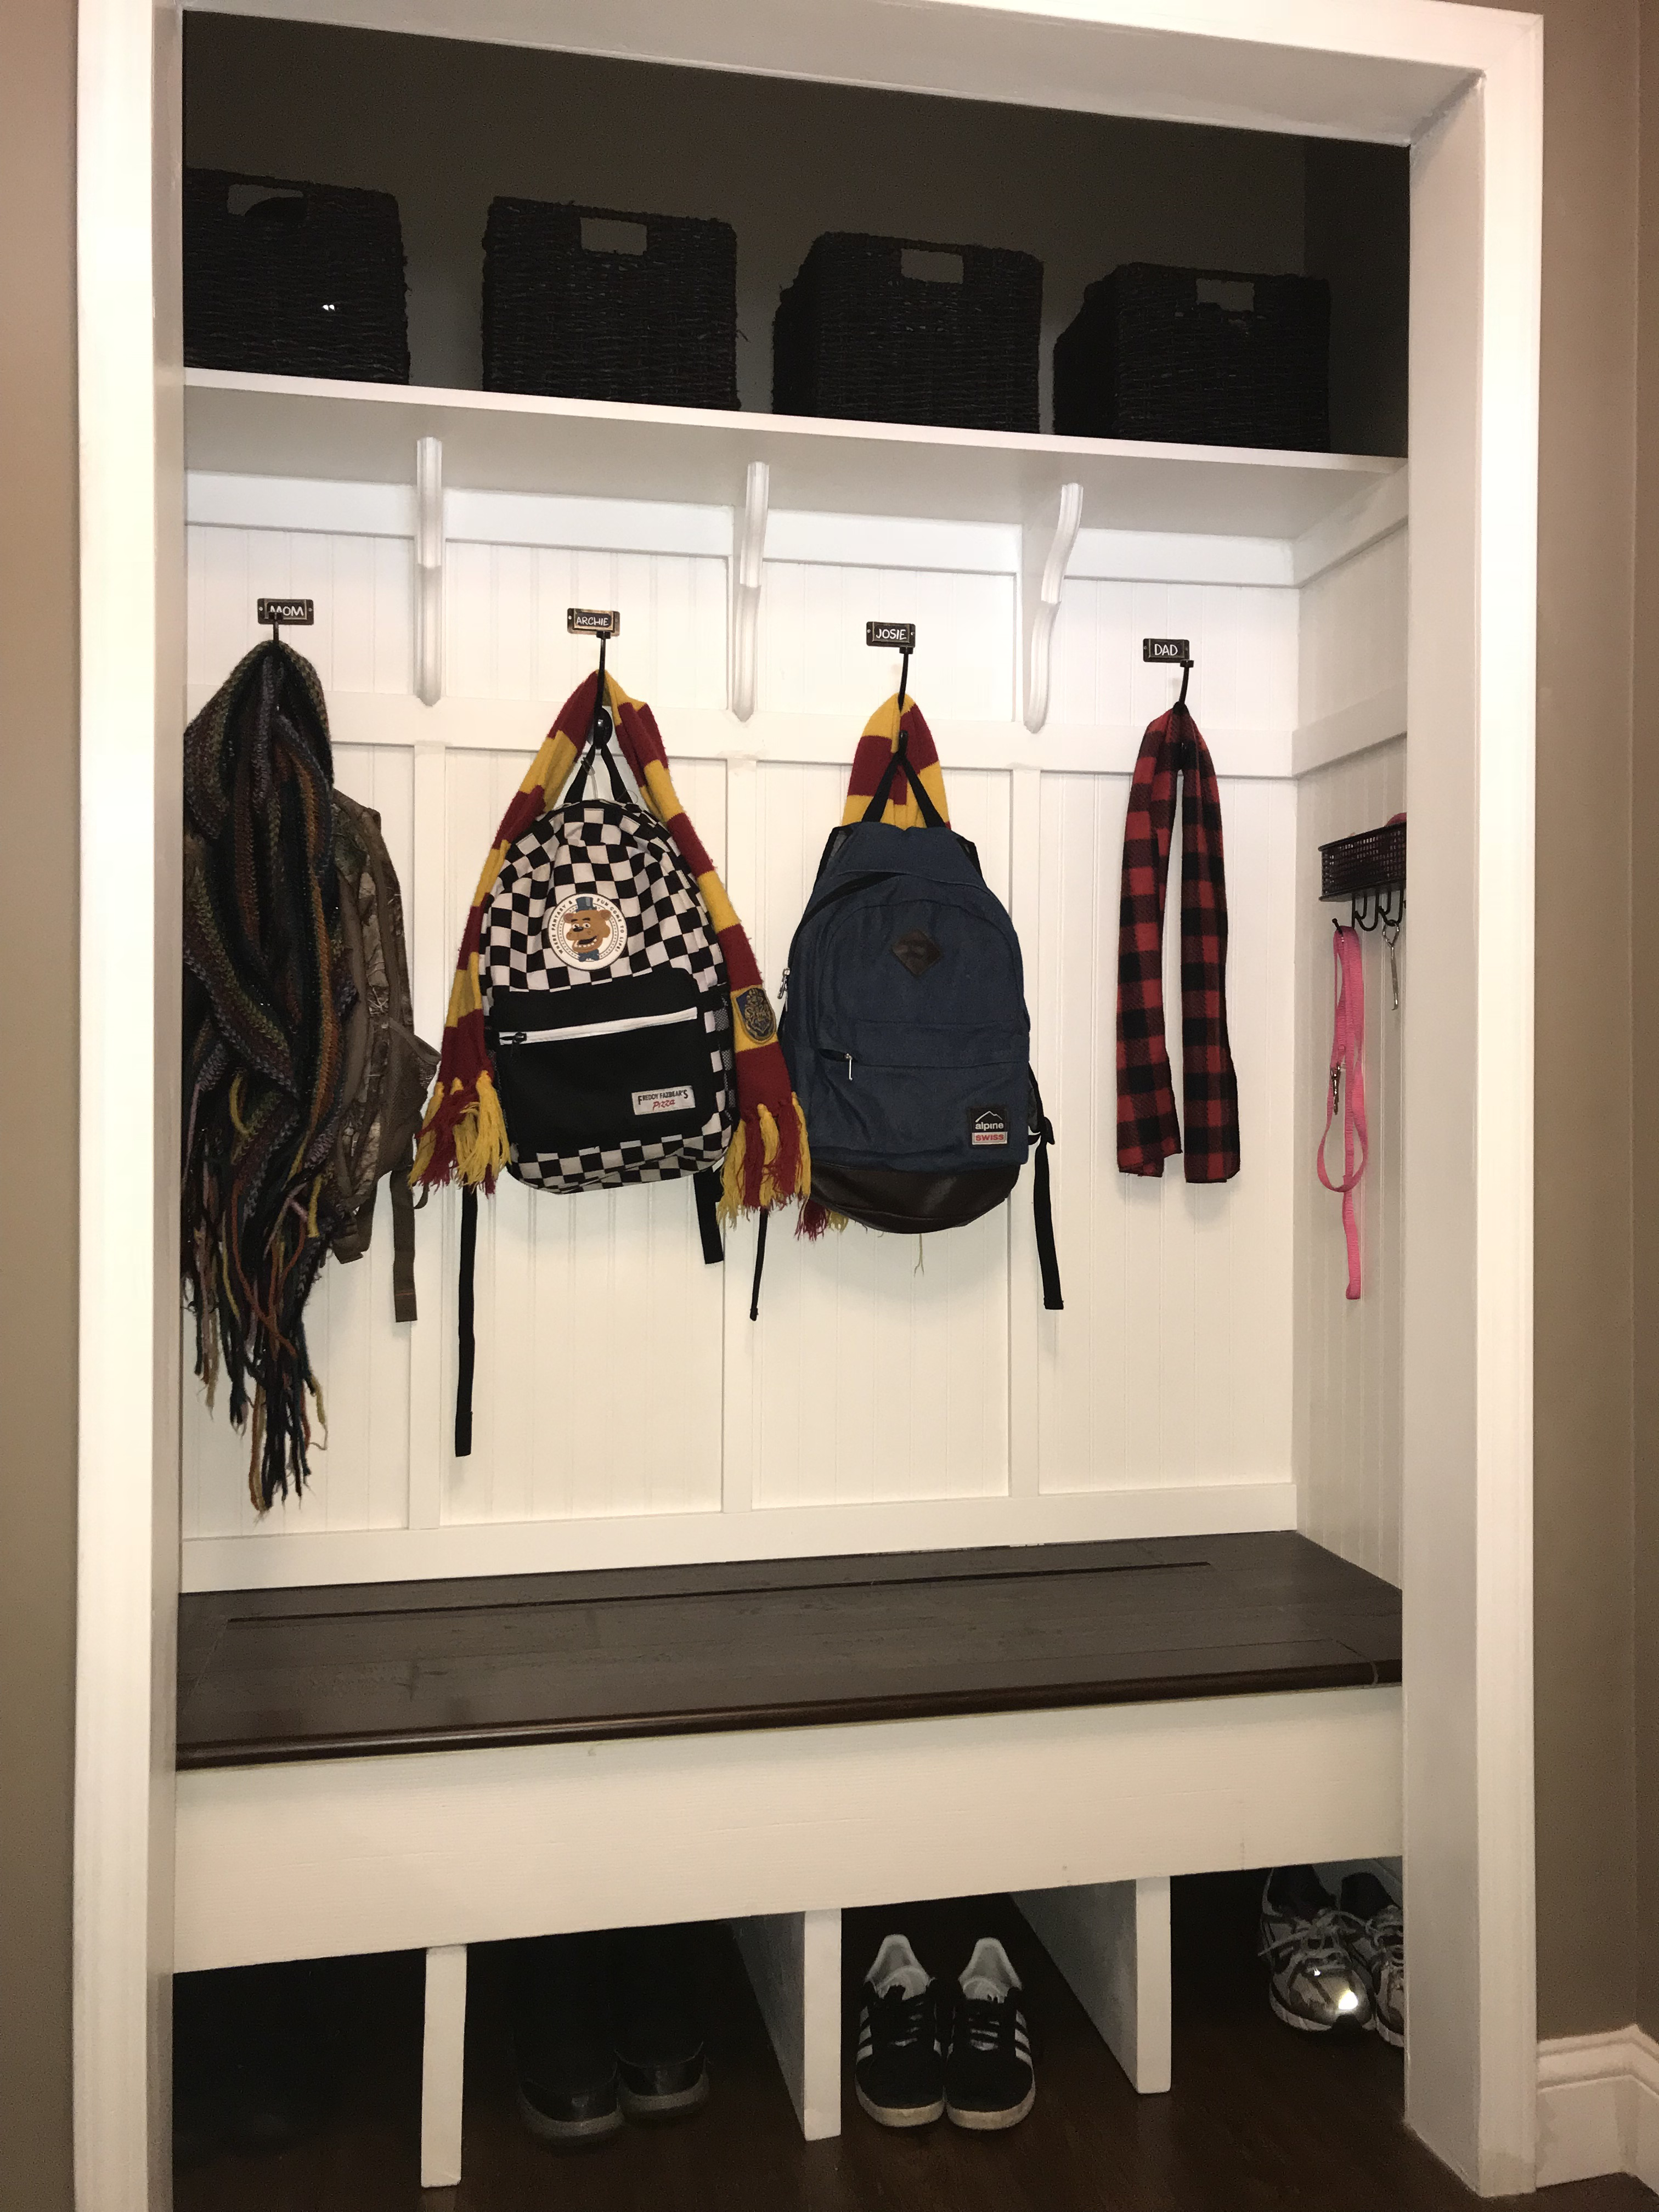 Converted The Closet By My Front Door Into A Mudroom Bench With Personal Coat Hooks Shoe Cubbies And Baskets For Eac In 2020 Mudroom Entryway Mudroom Entryway Closet